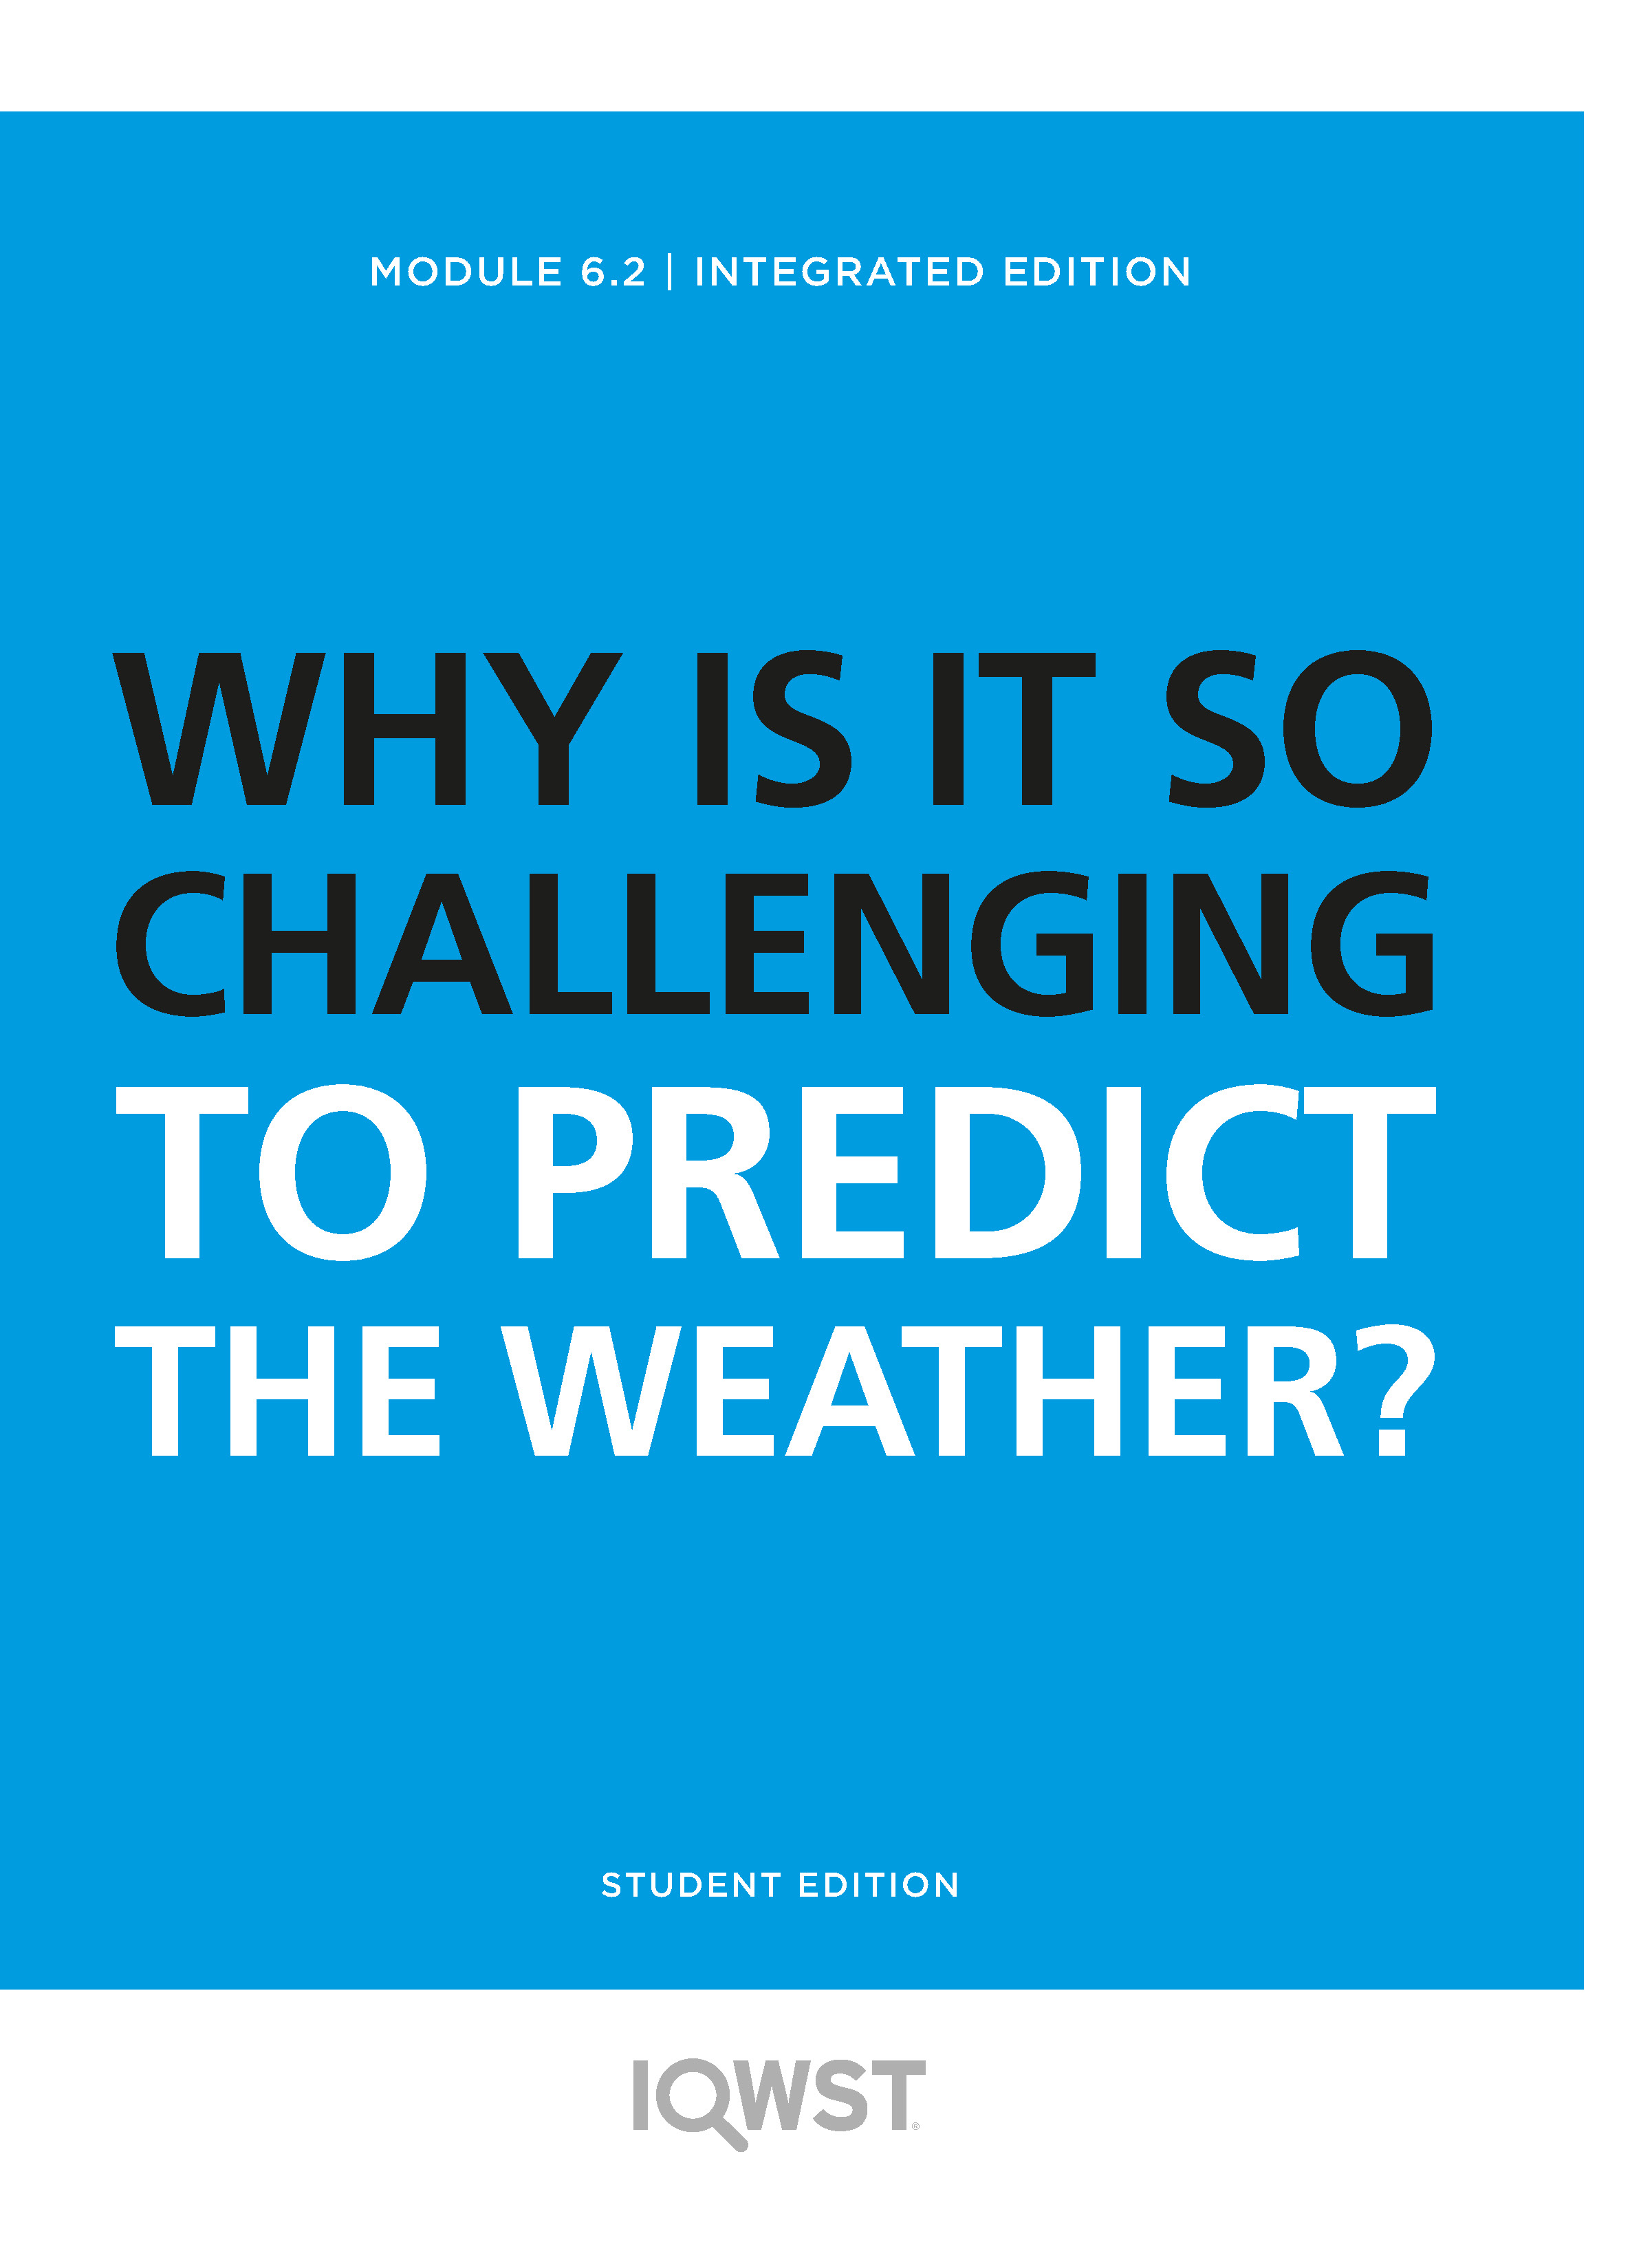 6.2 Why is It so Challenging to Predict the Weather?